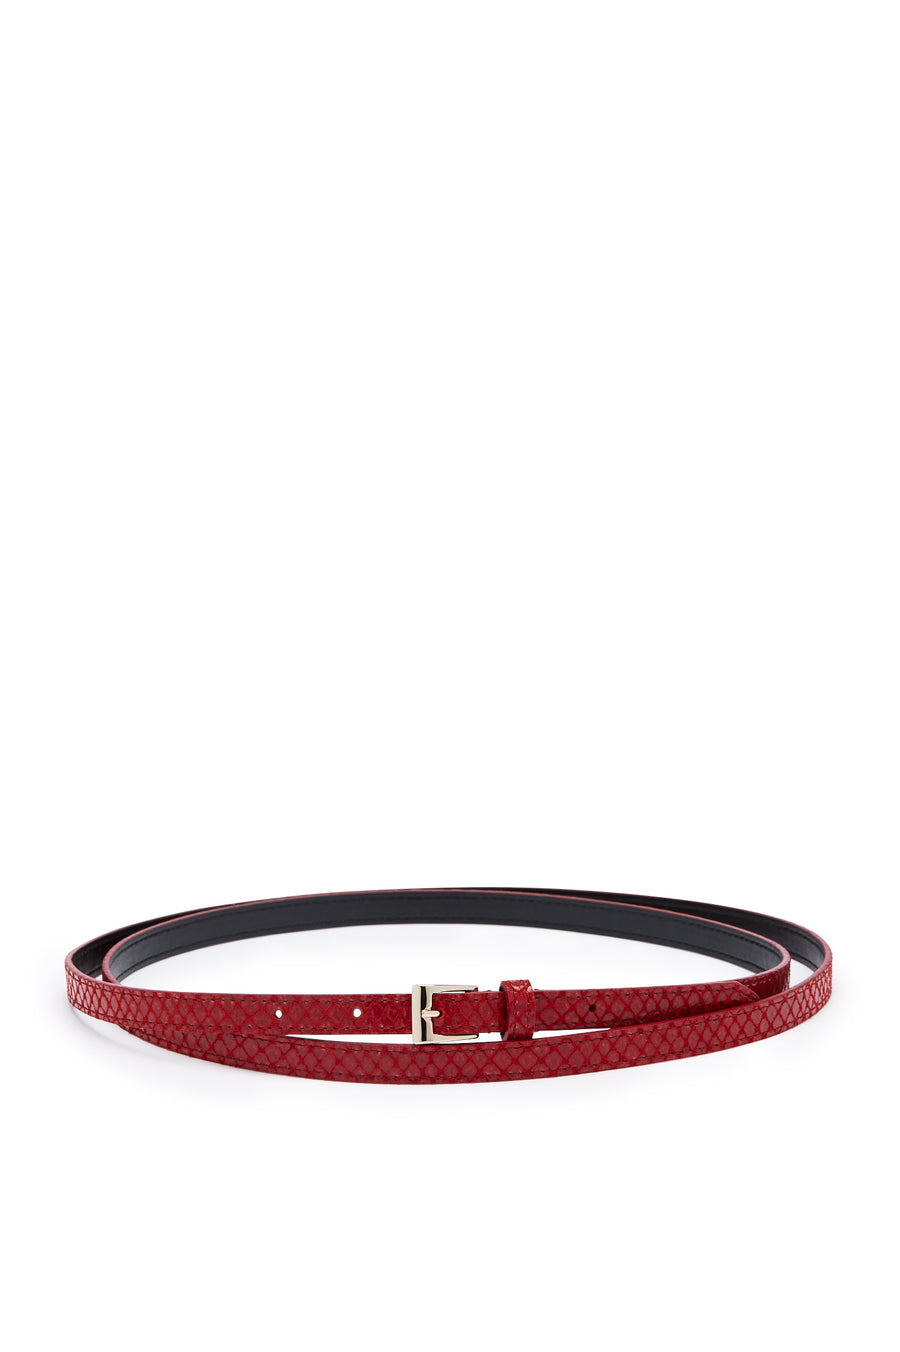 Double Wrap Belt, embossed python finish, Italian Leather. Buckle fastening, 1.2cm band width. Color Red Rosso